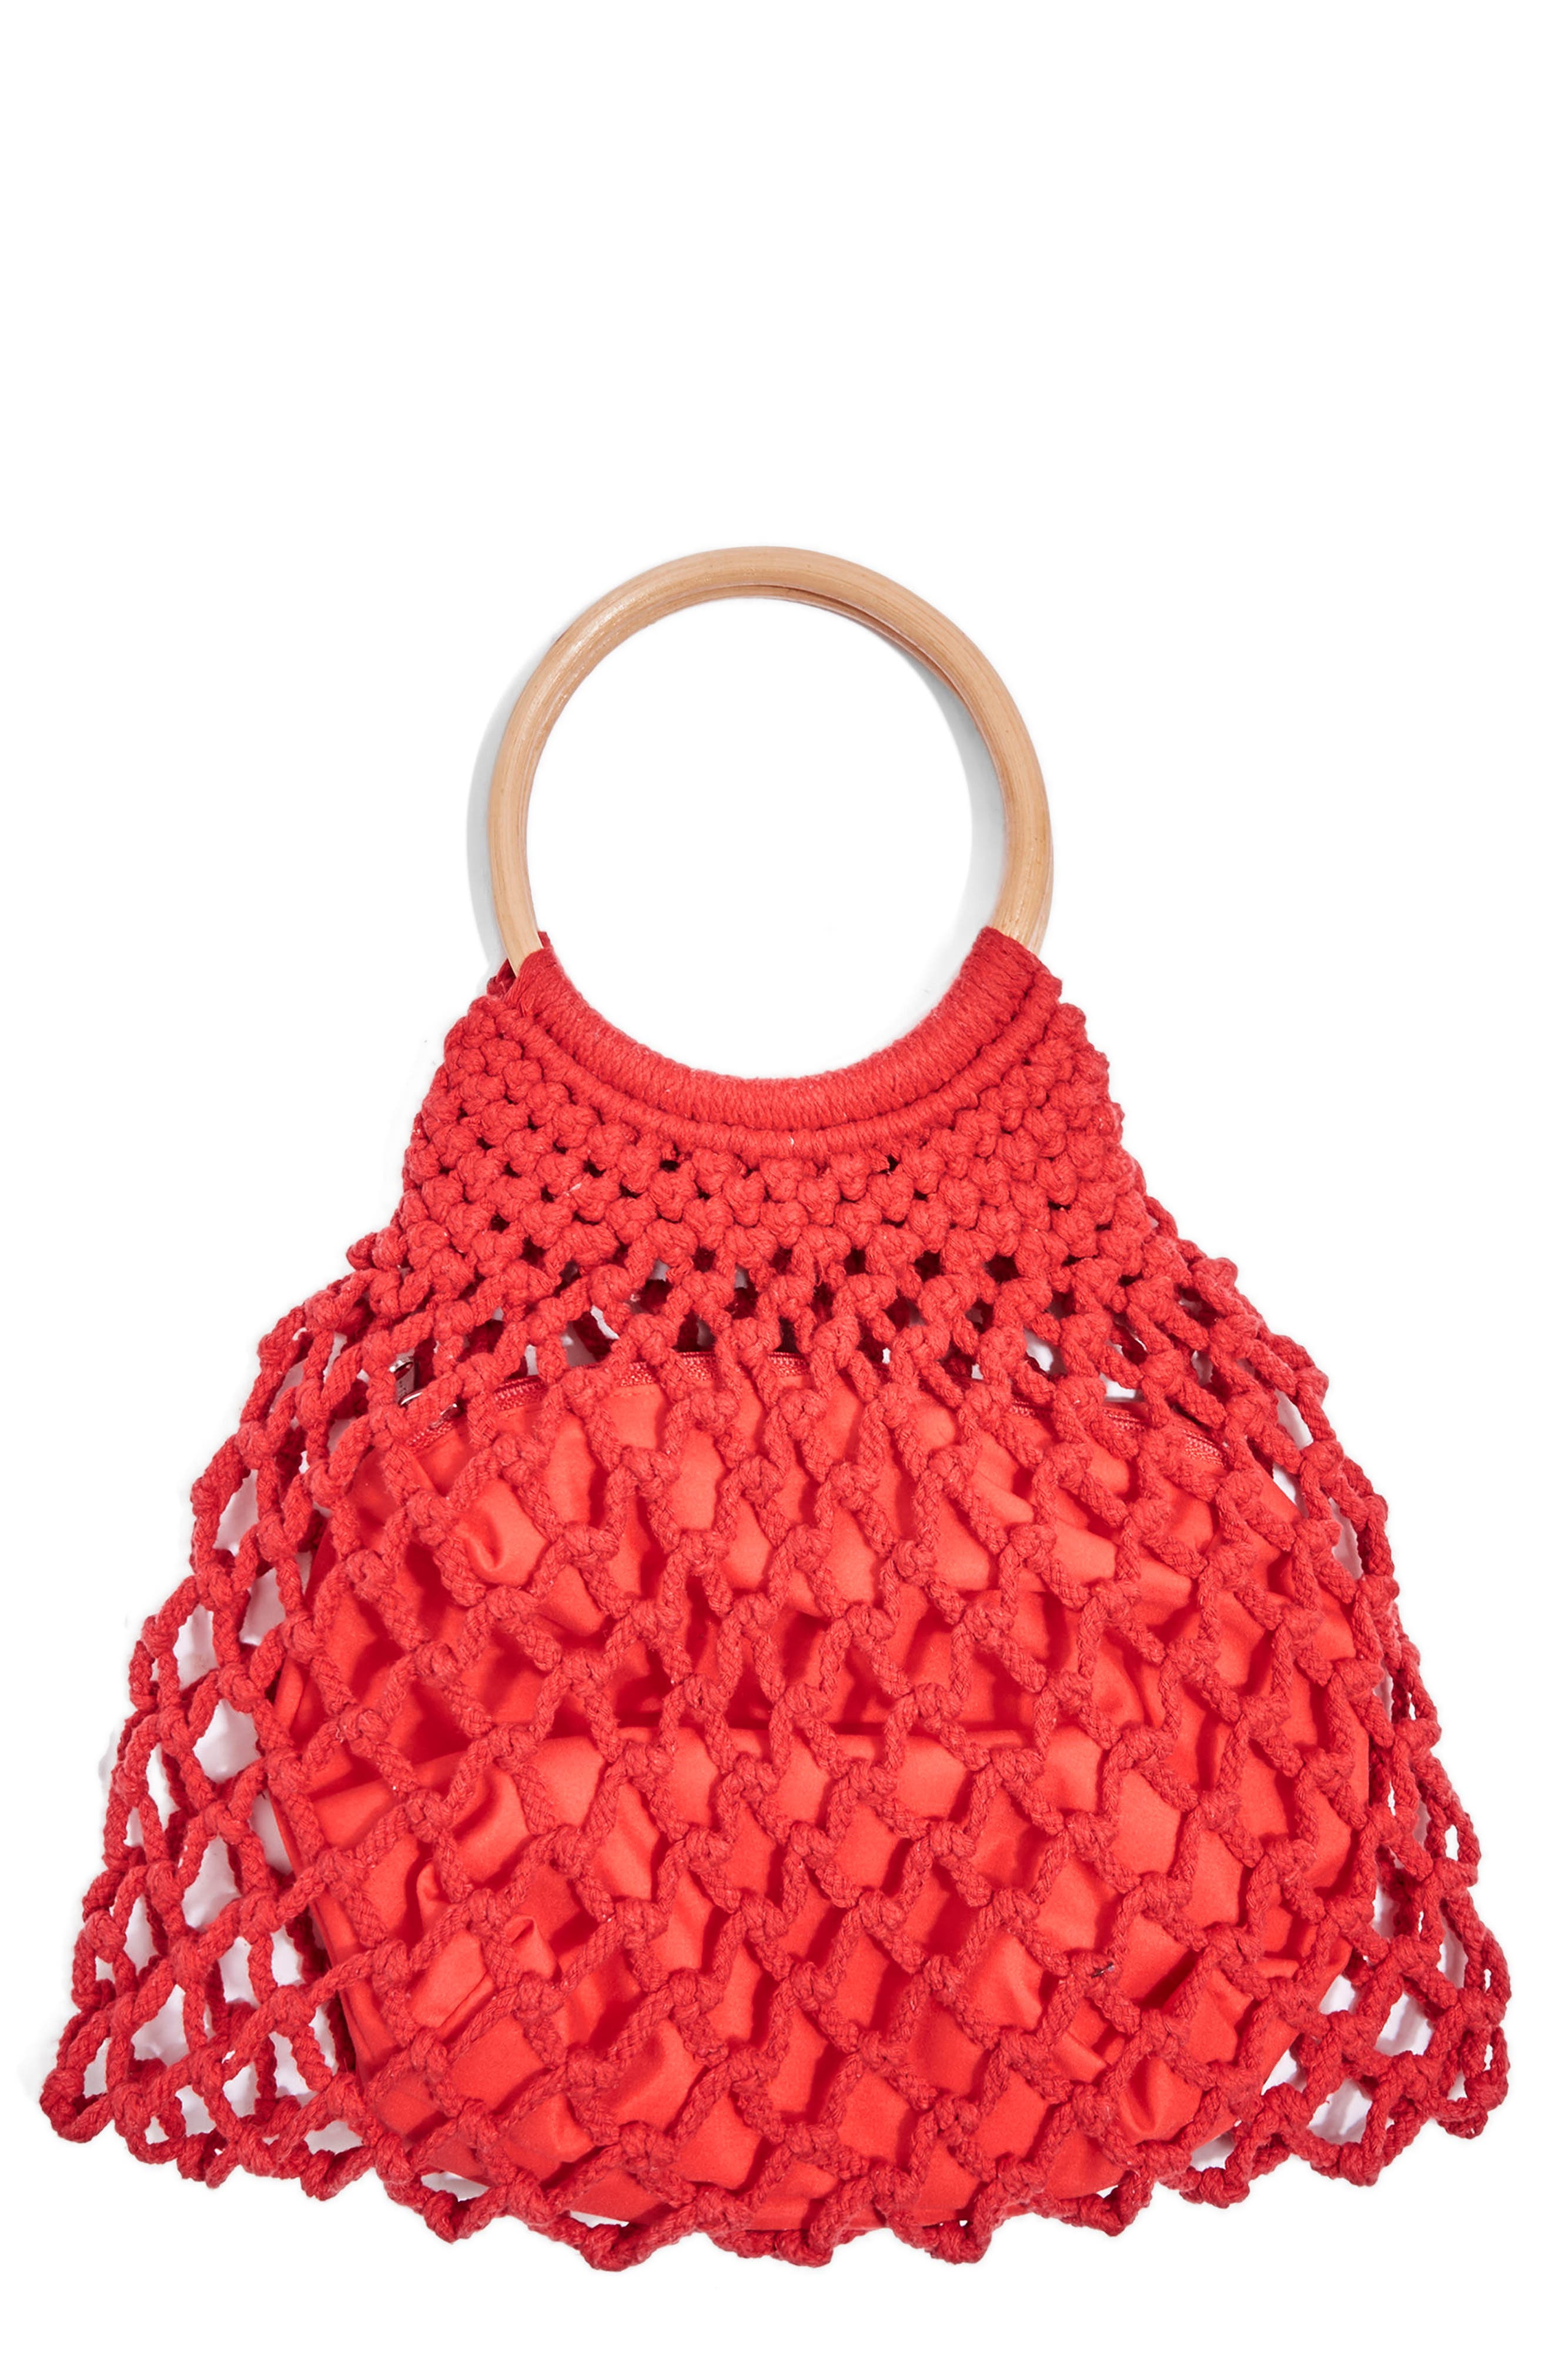 Benny String Shopper Bag,                             Main thumbnail 1, color,                             Red